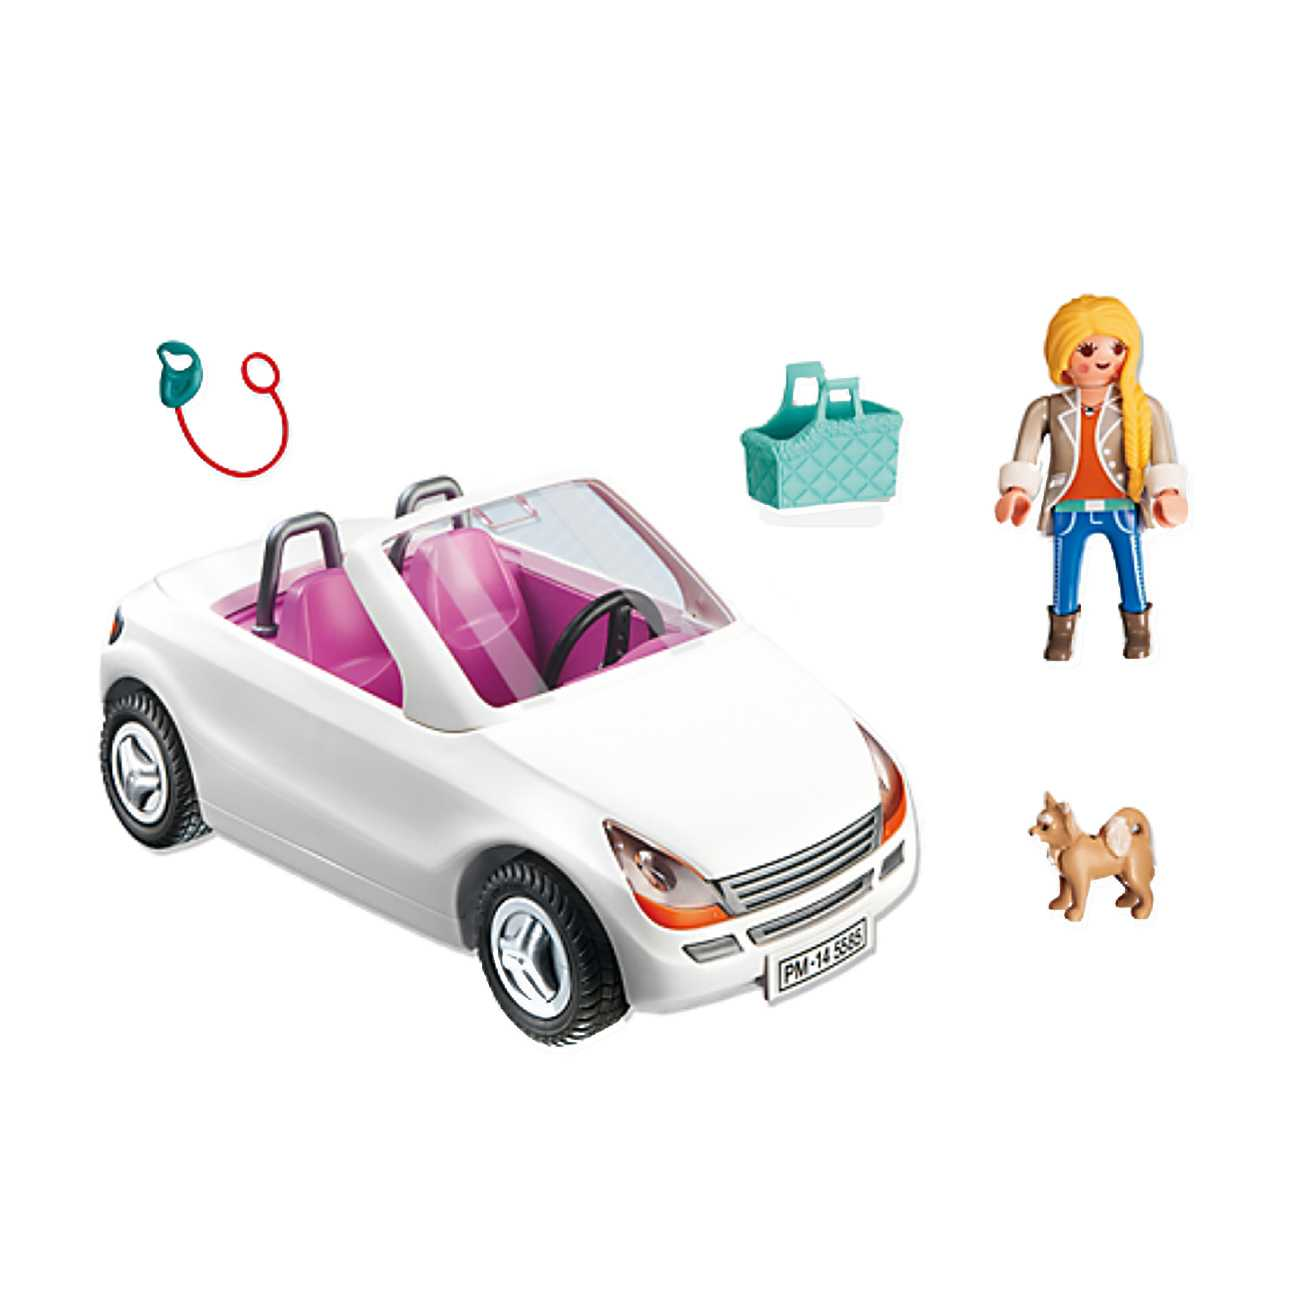 CONVERTIBLE WITH WOMAN AND PUPPY